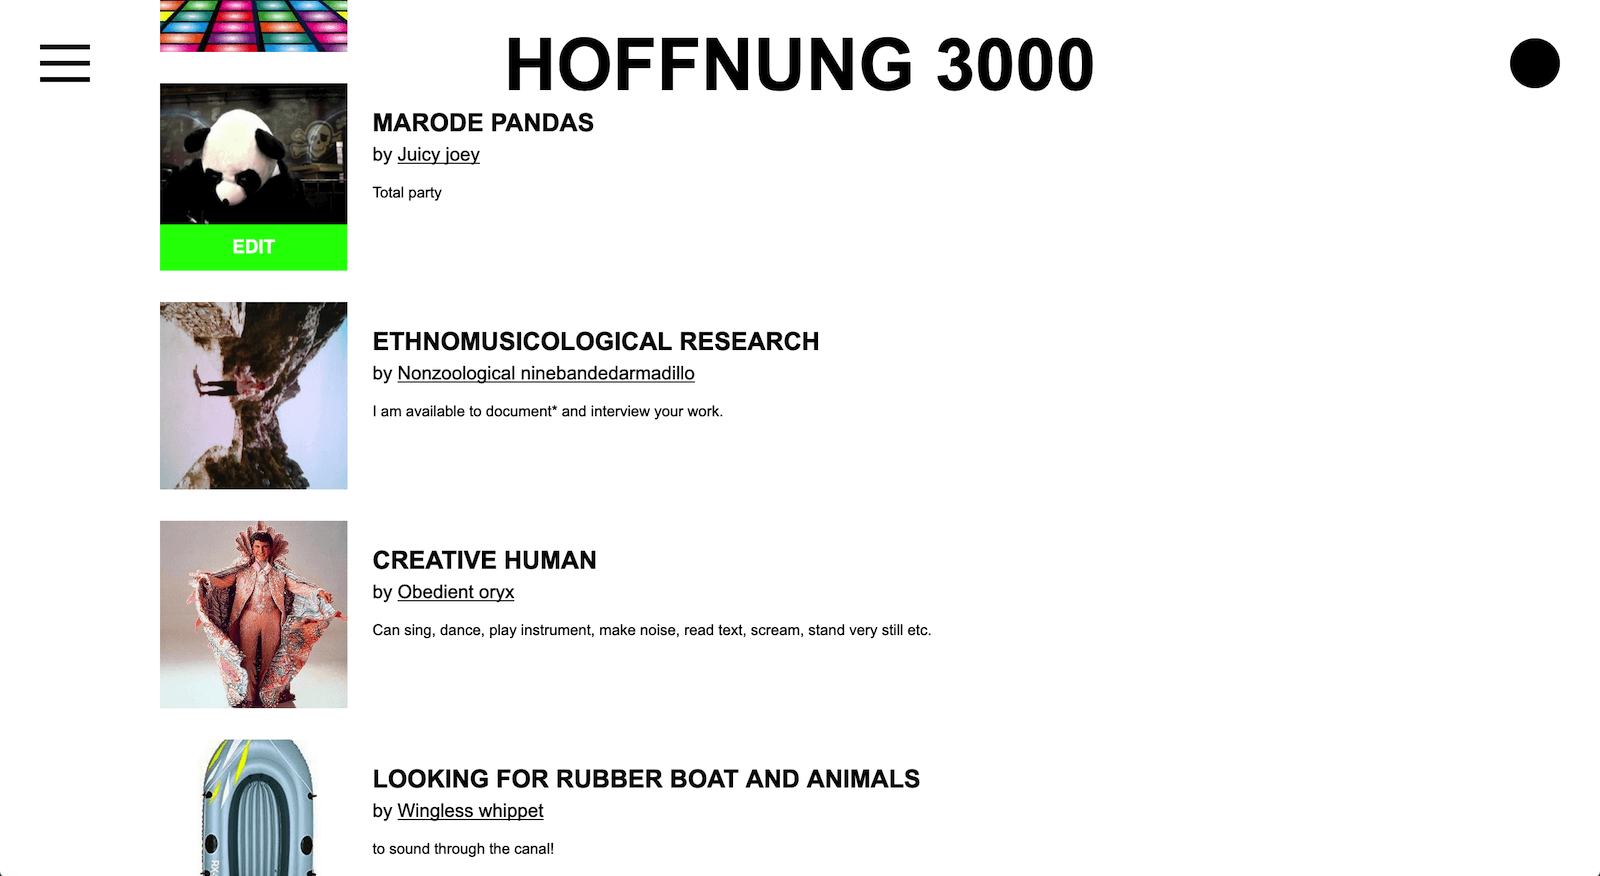 HOFFNUNG 3000 Resources list